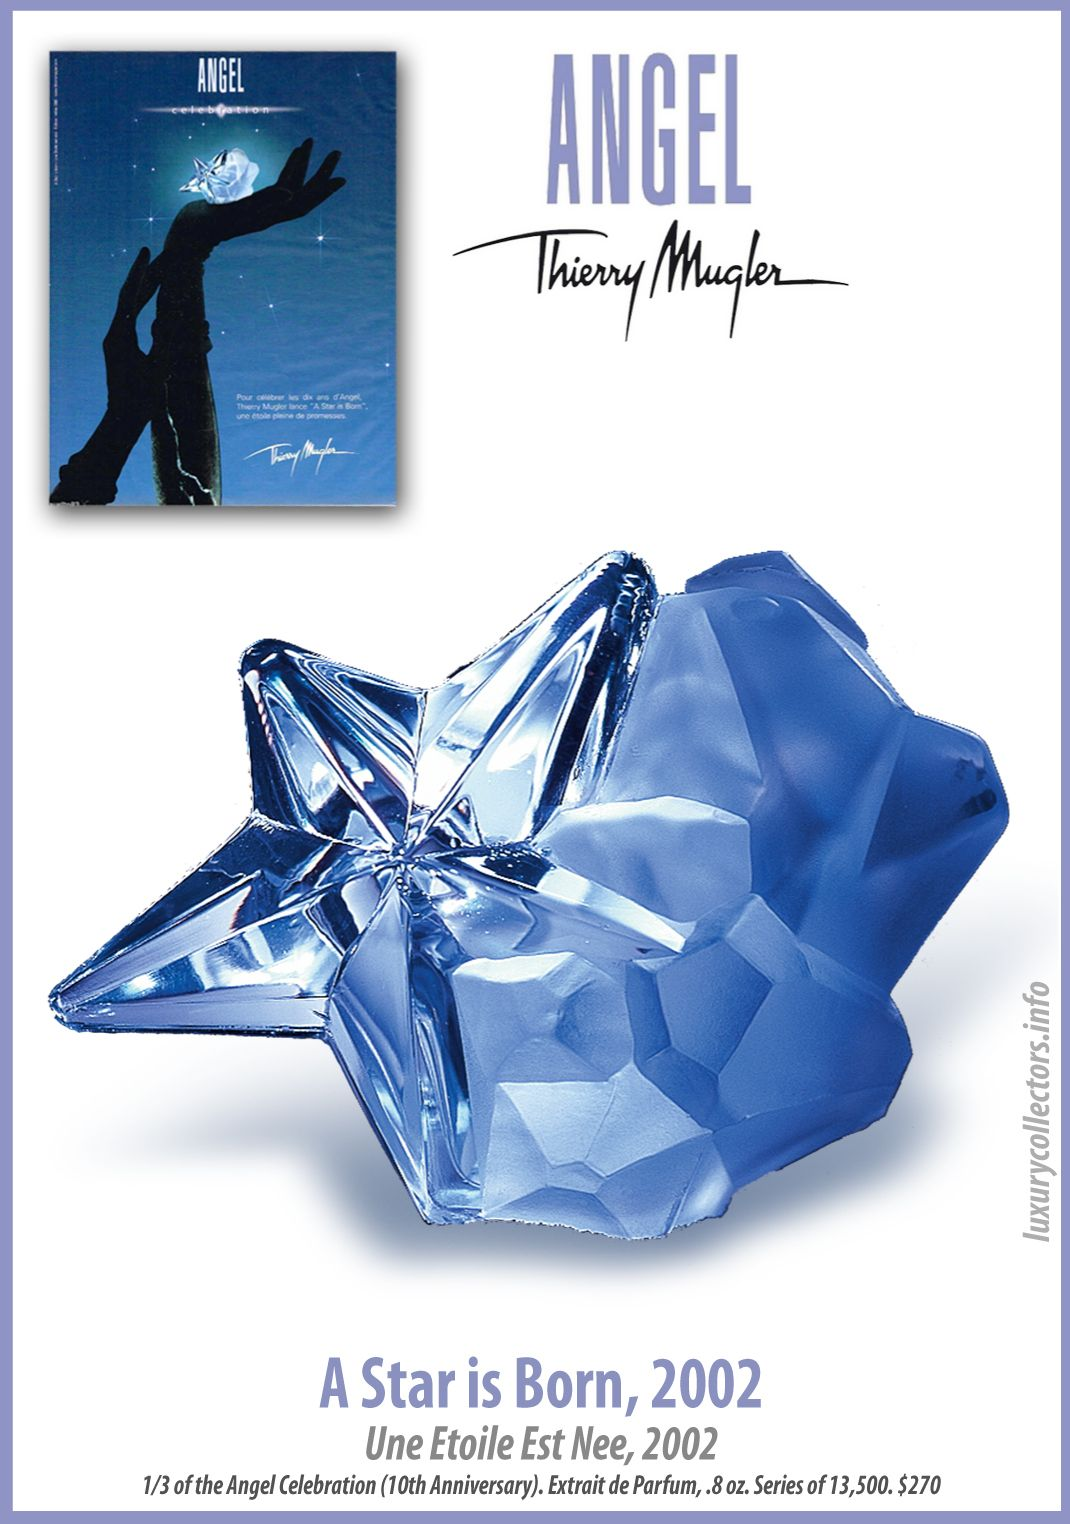 Collector S Guide To Value Of Thierry Mugler Angel Perfume Bottles